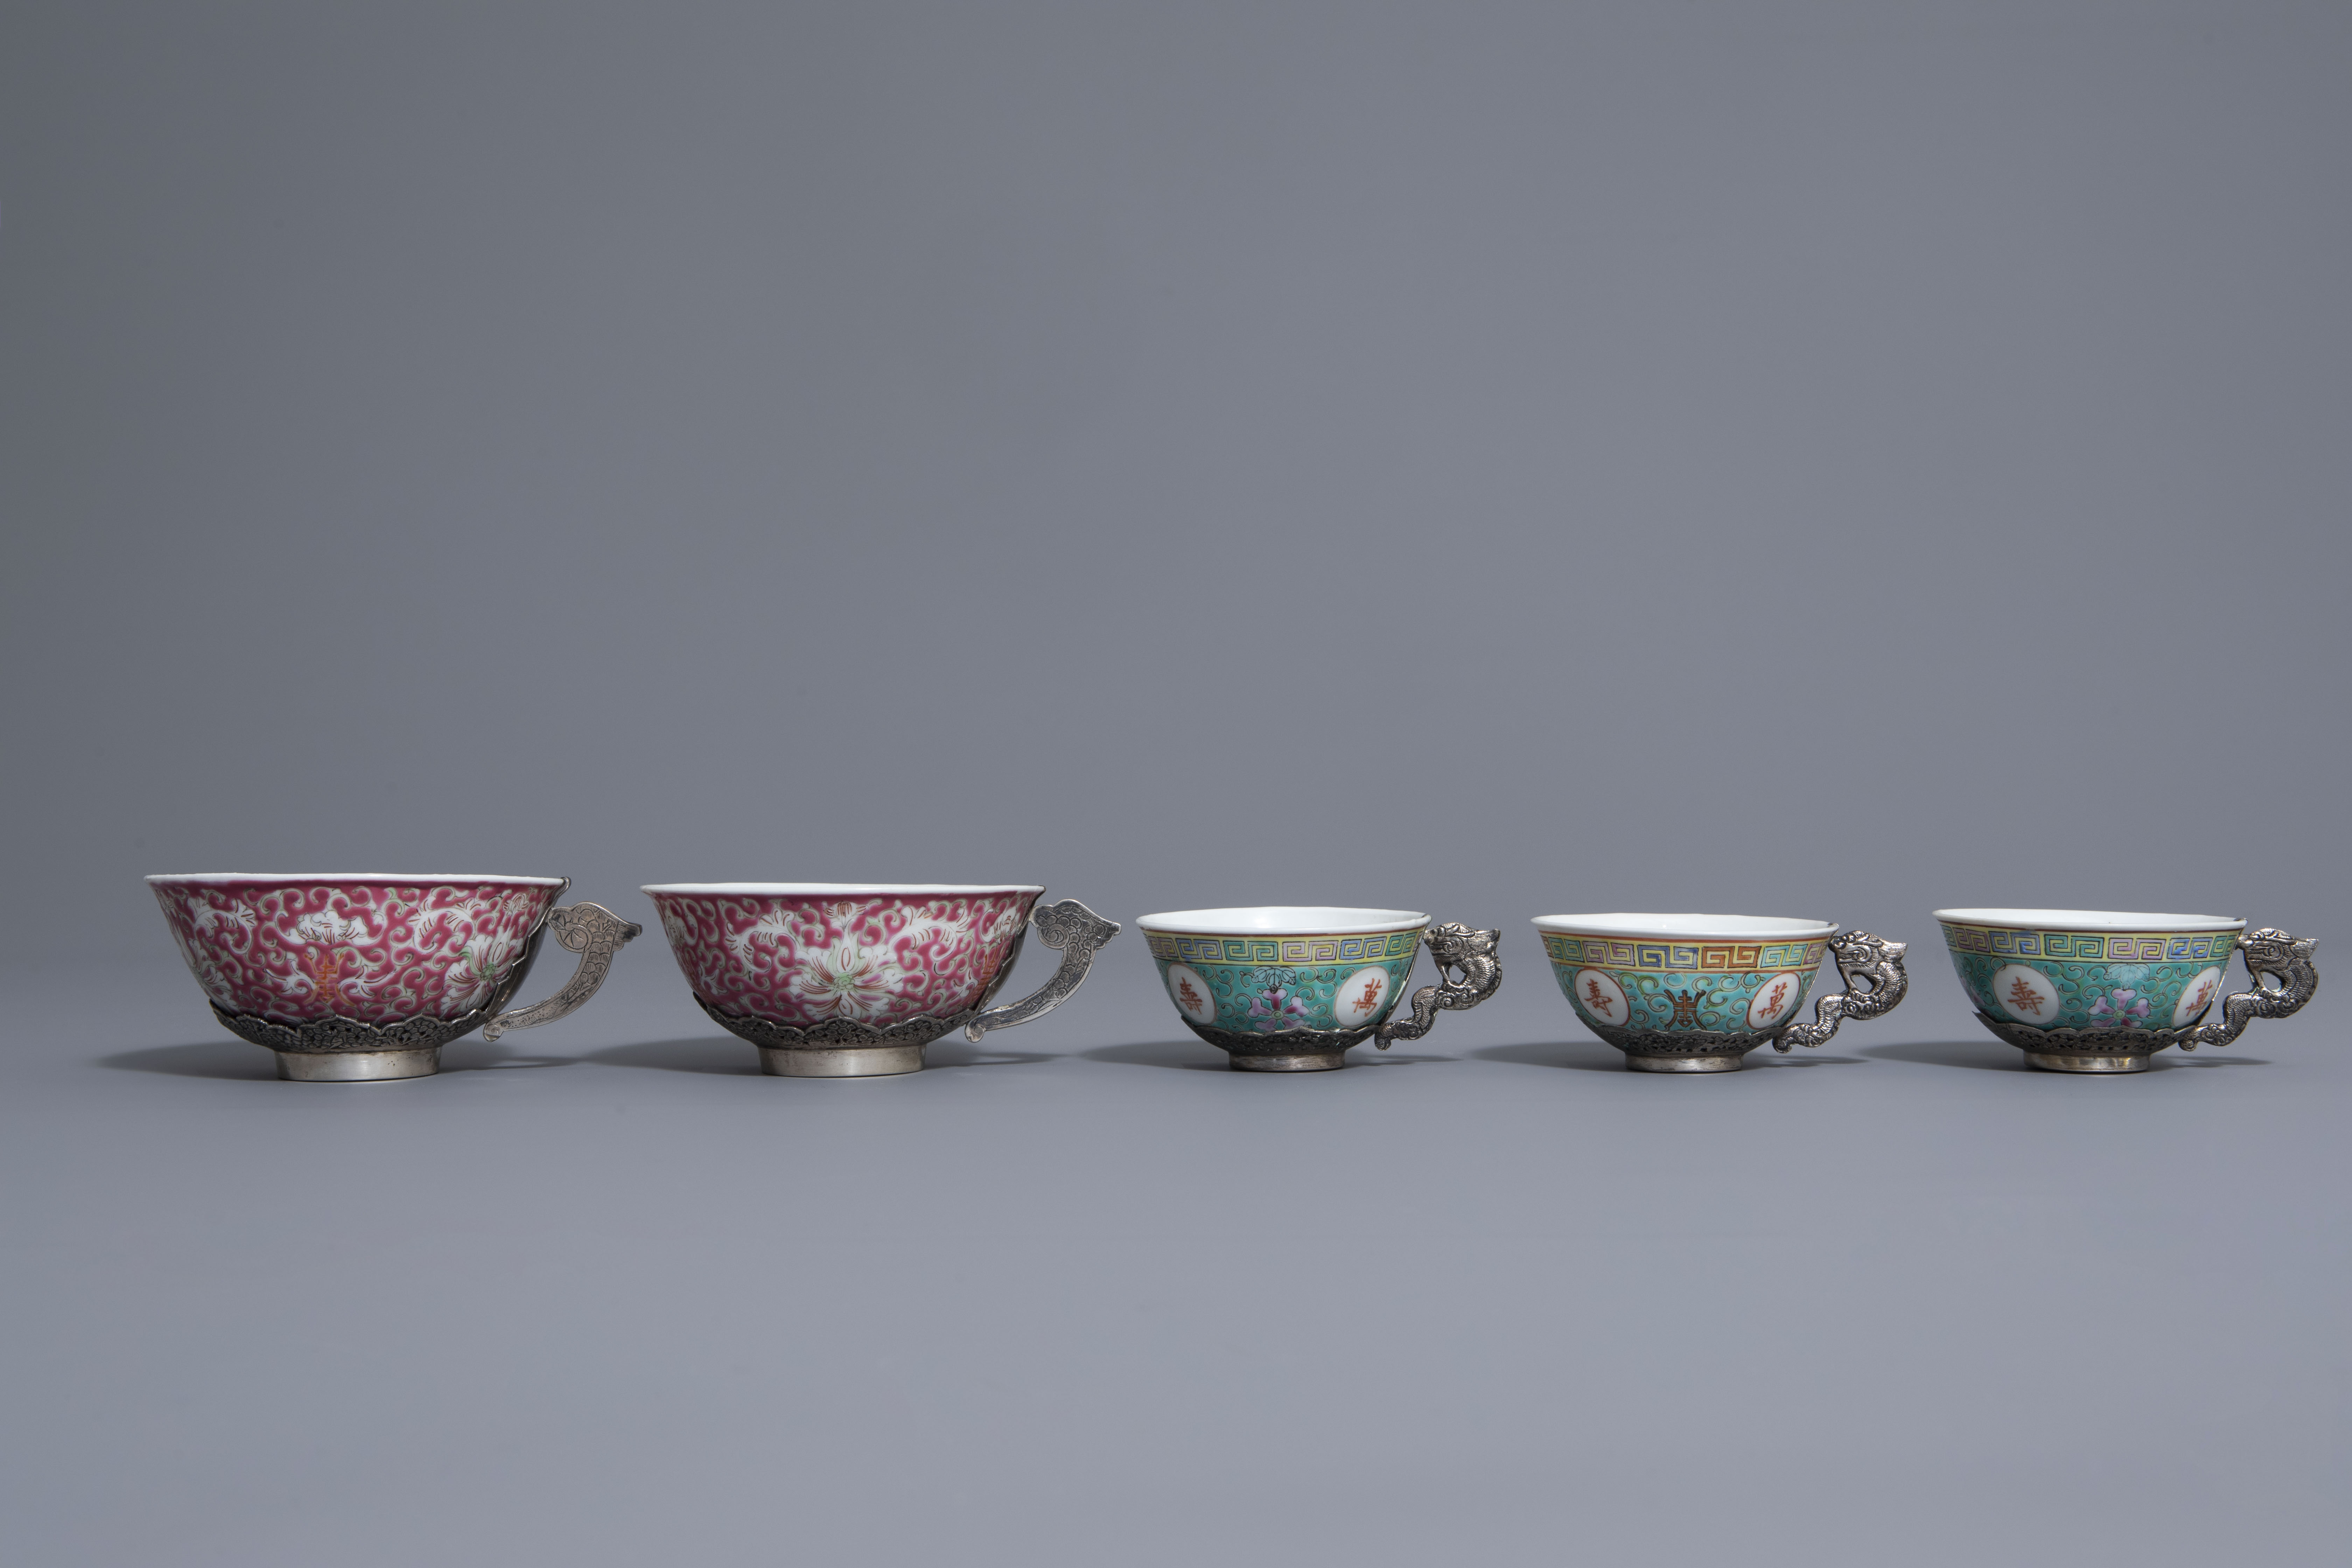 Five Chinese famille rose and silver cups and saucers and a bowl, 19th/20th C. - Image 6 of 17